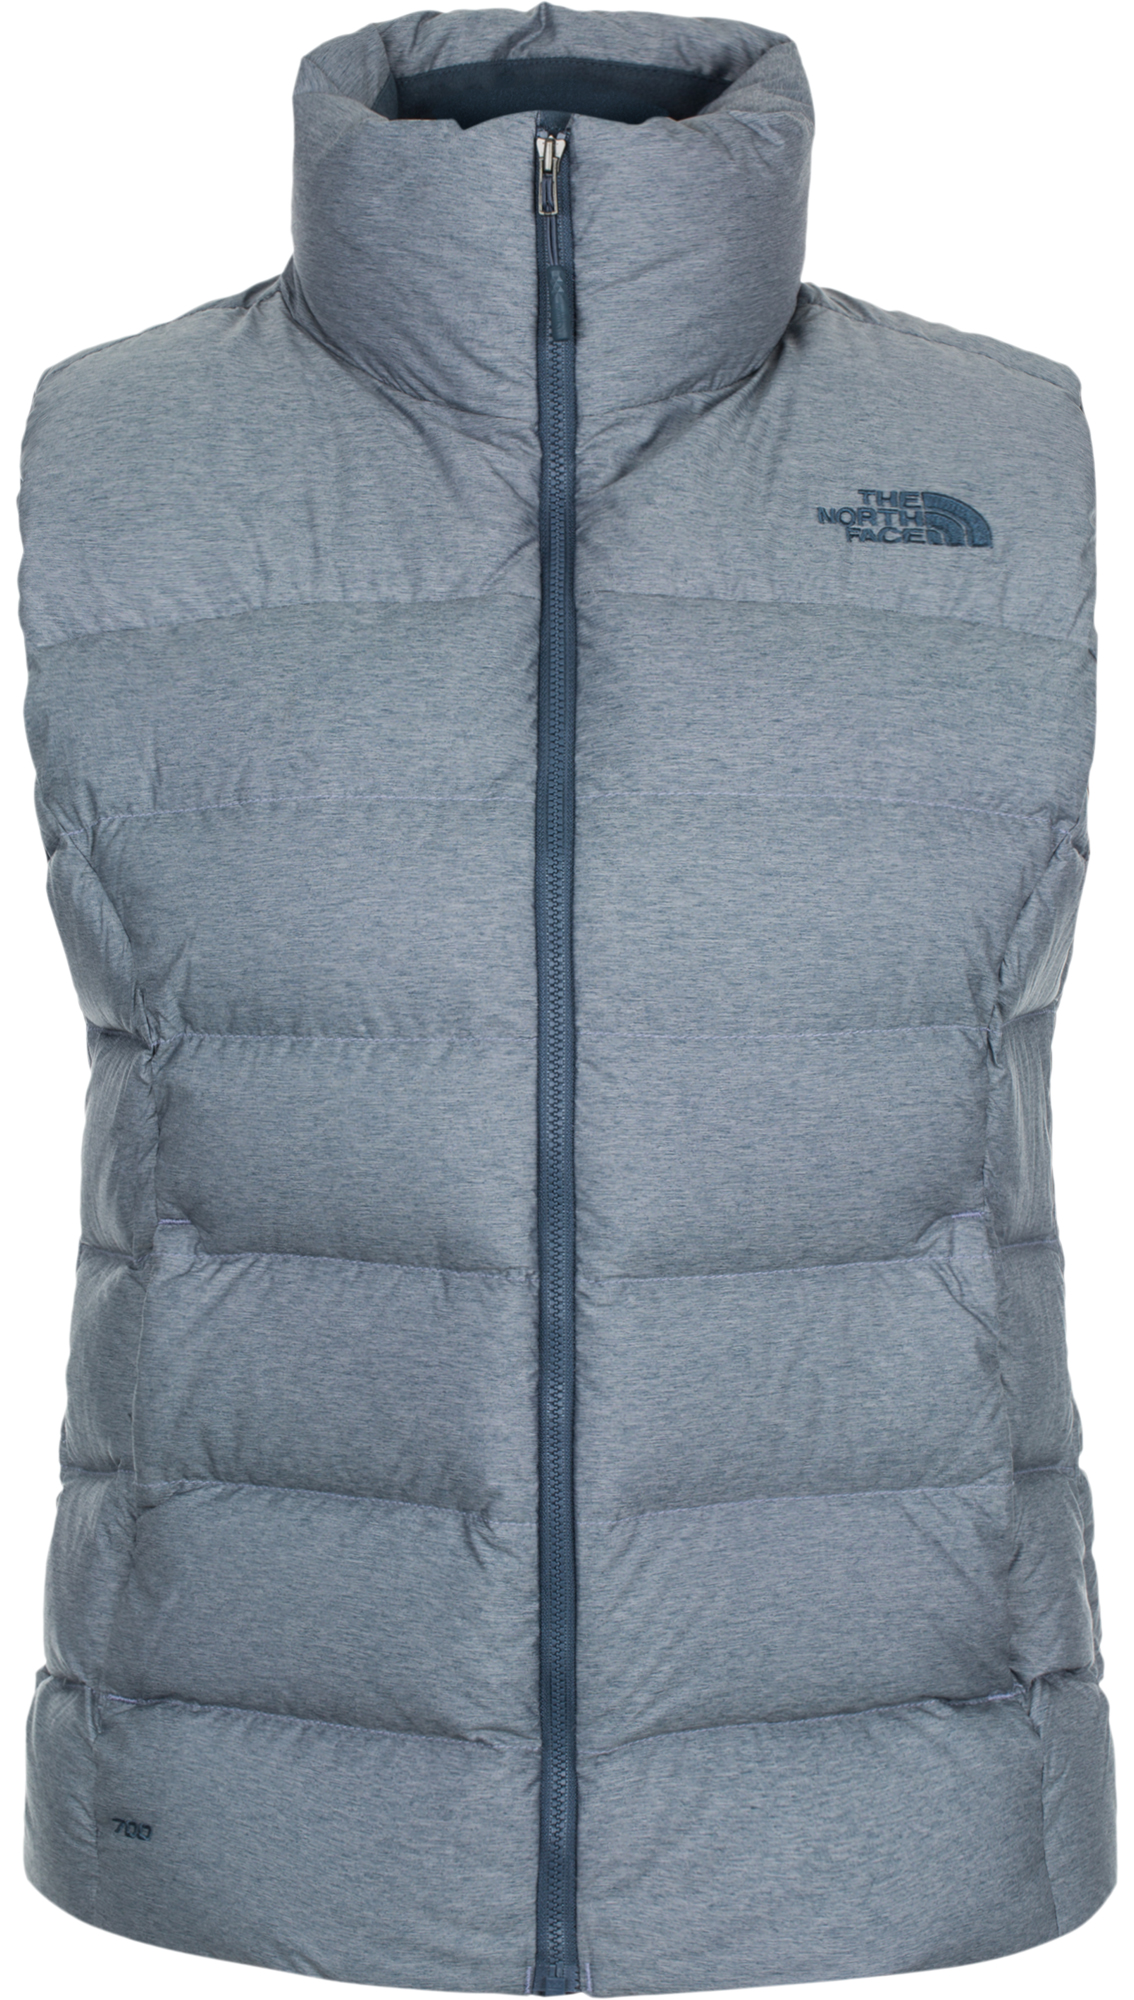 The North Face Жилет пуховой женский The North Face Nuptse Vest, размер 44 тапочки the north face the north face nuptse tent mule iii женские